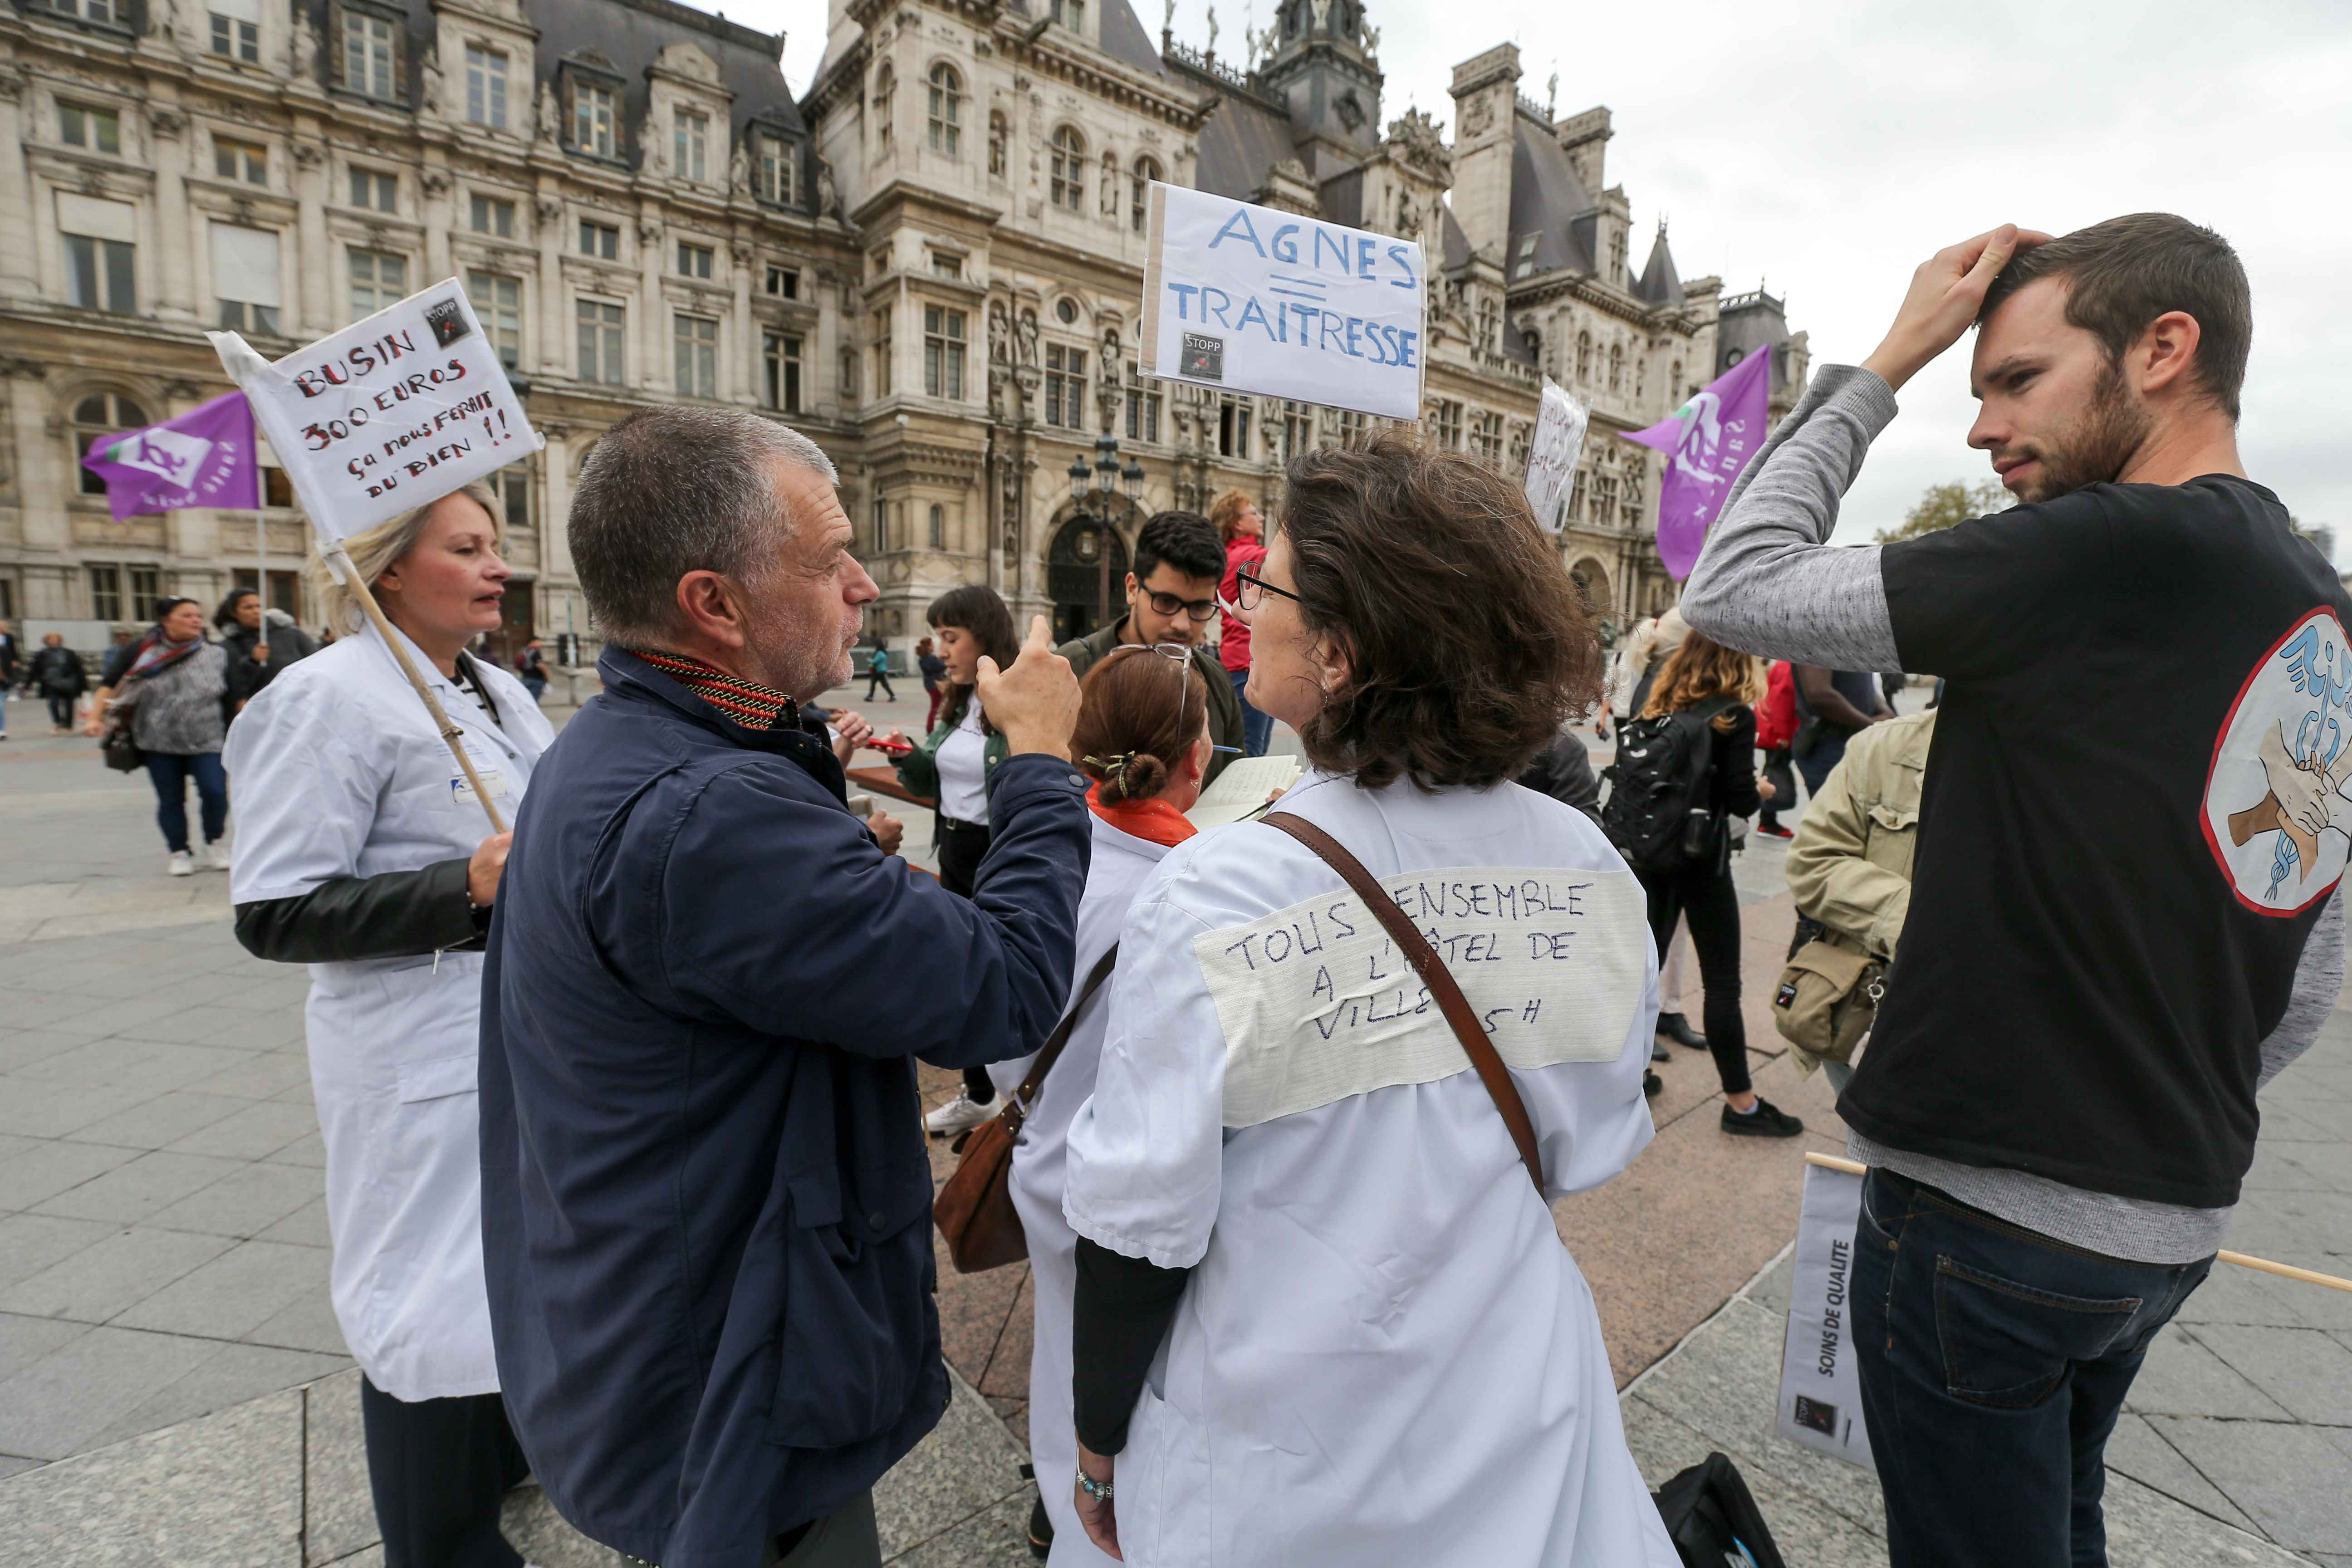 Doctors, nurses and cargivers gather in Paris in front the Hotel de Ville, outside the headquarter of Assistance publique and Hôpitaux de Paris or AP-HP, public hospital system of Paris, to improve the working conditions in the French emergencies services